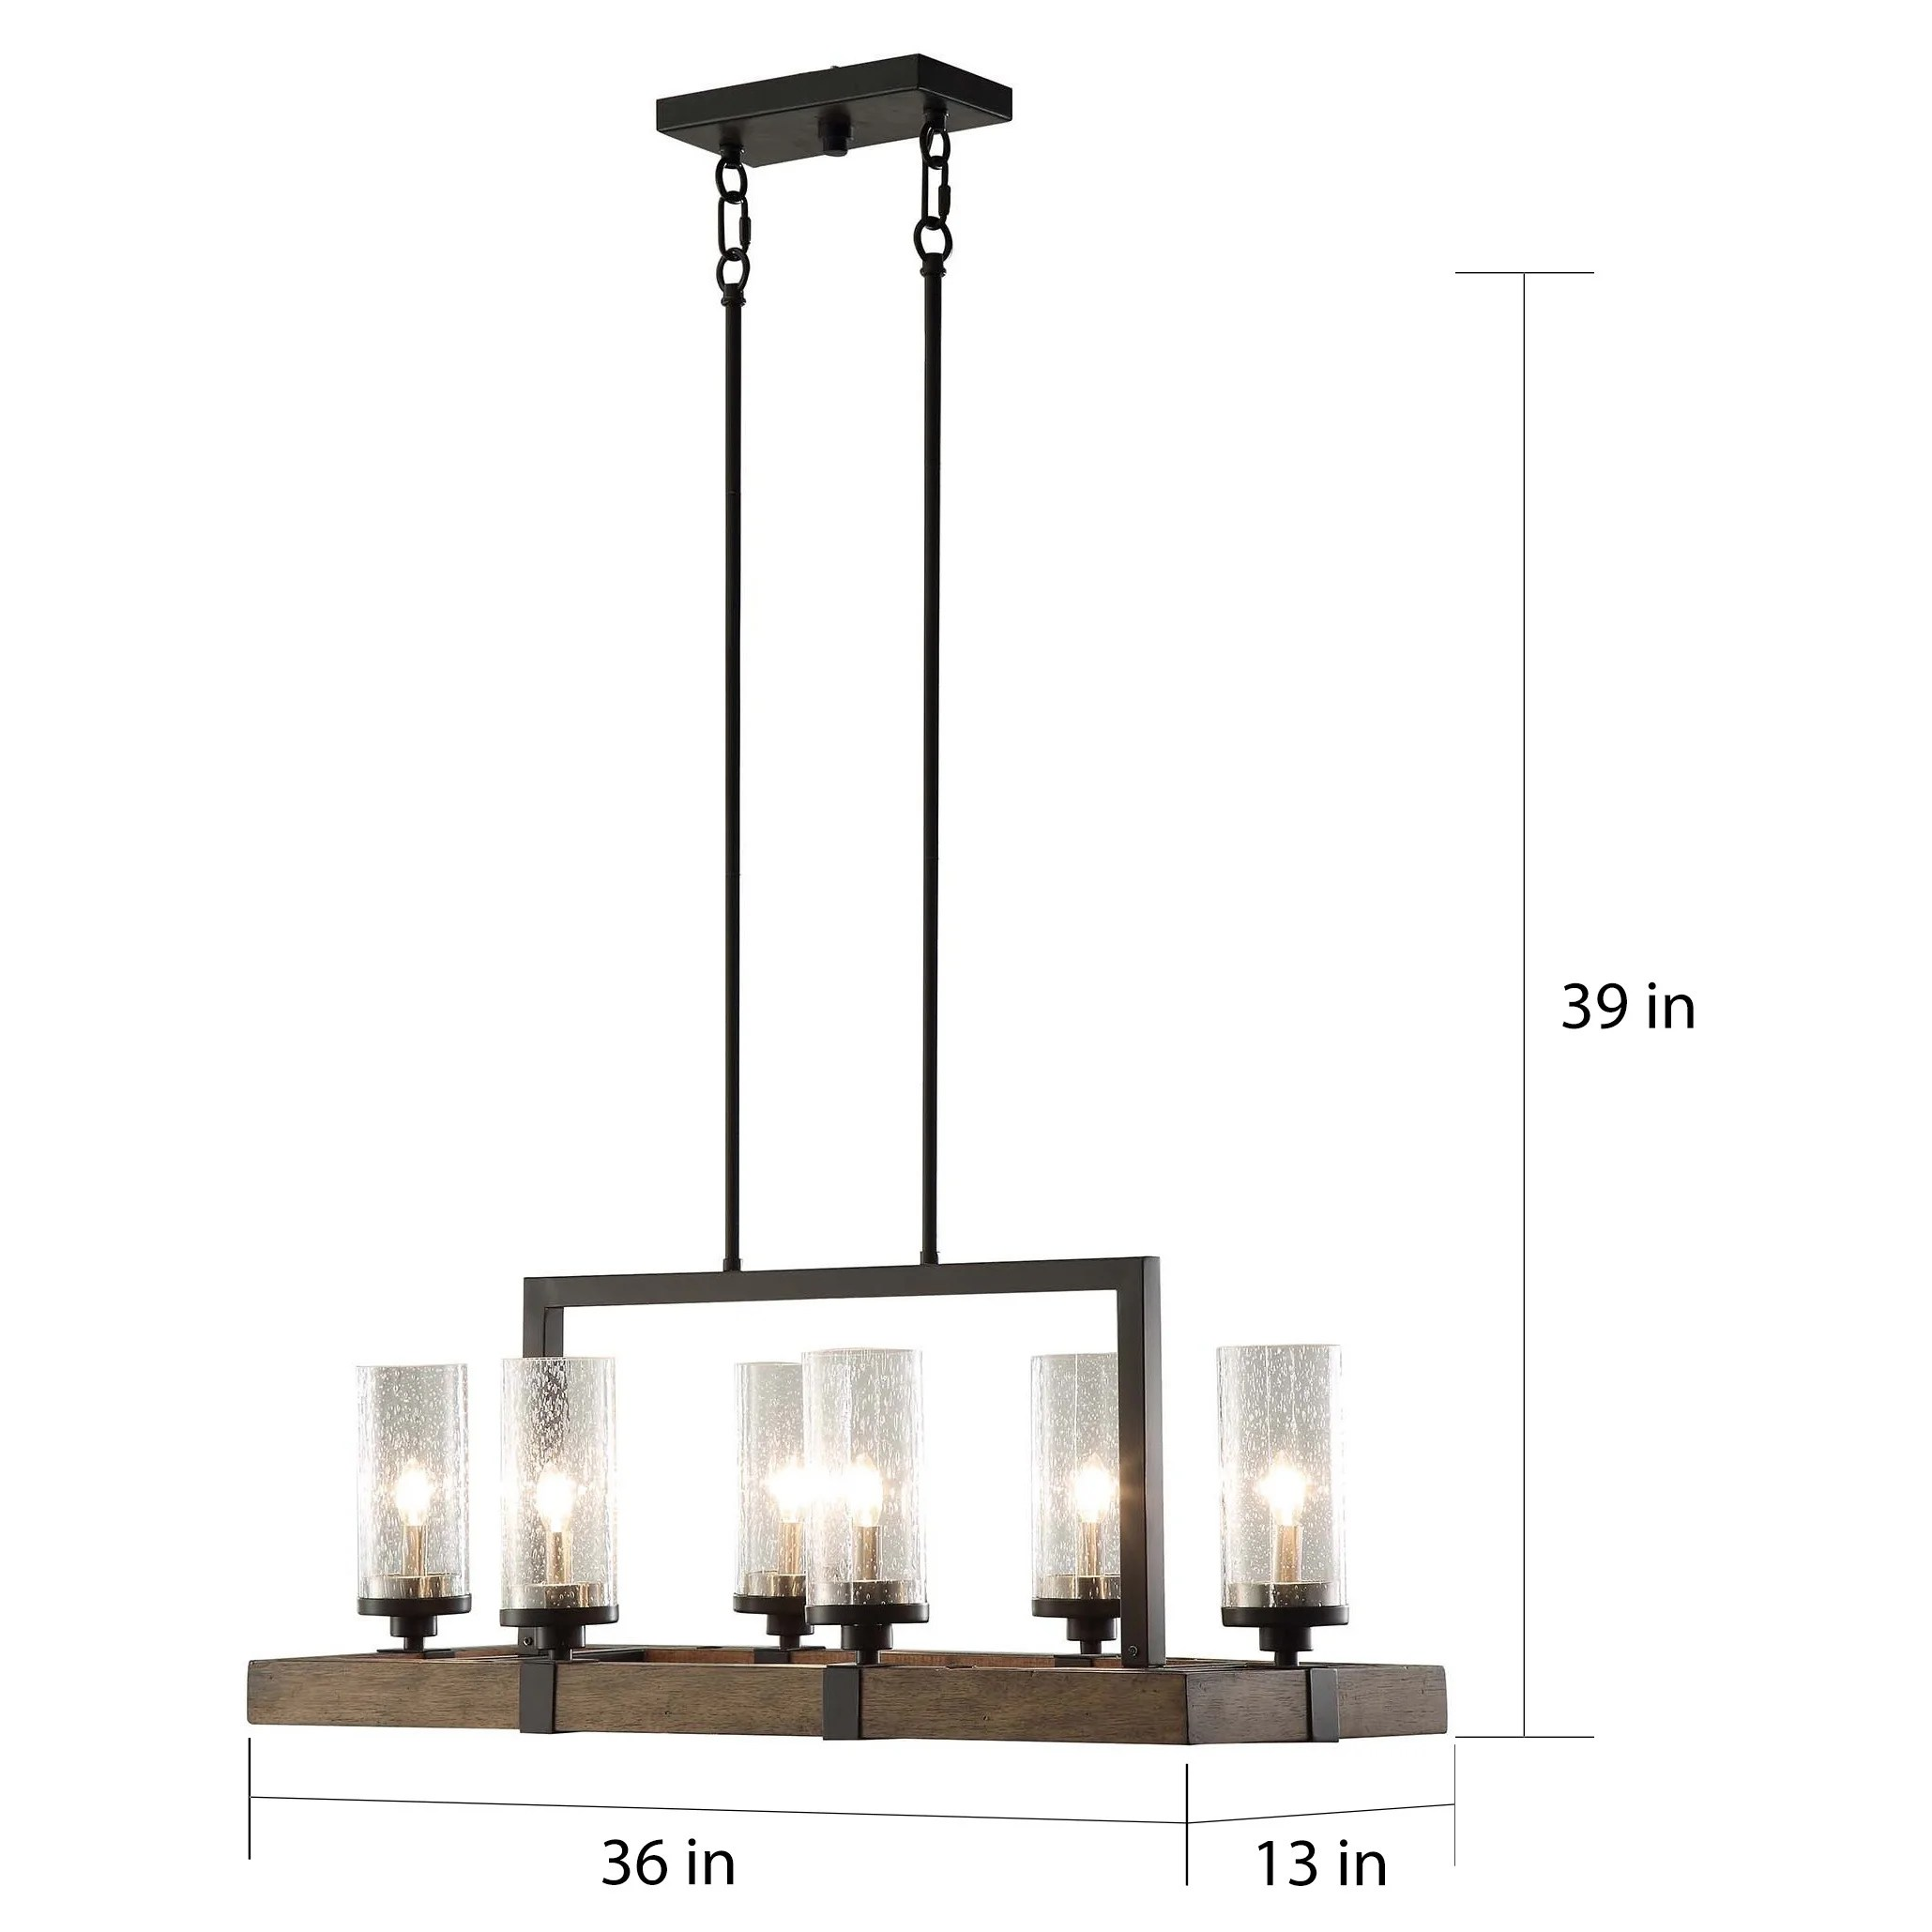 Chandelier Height 10 Foot Ceiling The Gray Barn Vineyard Metal And Wood 6 Light Chandelier With Seeded Glass Shades